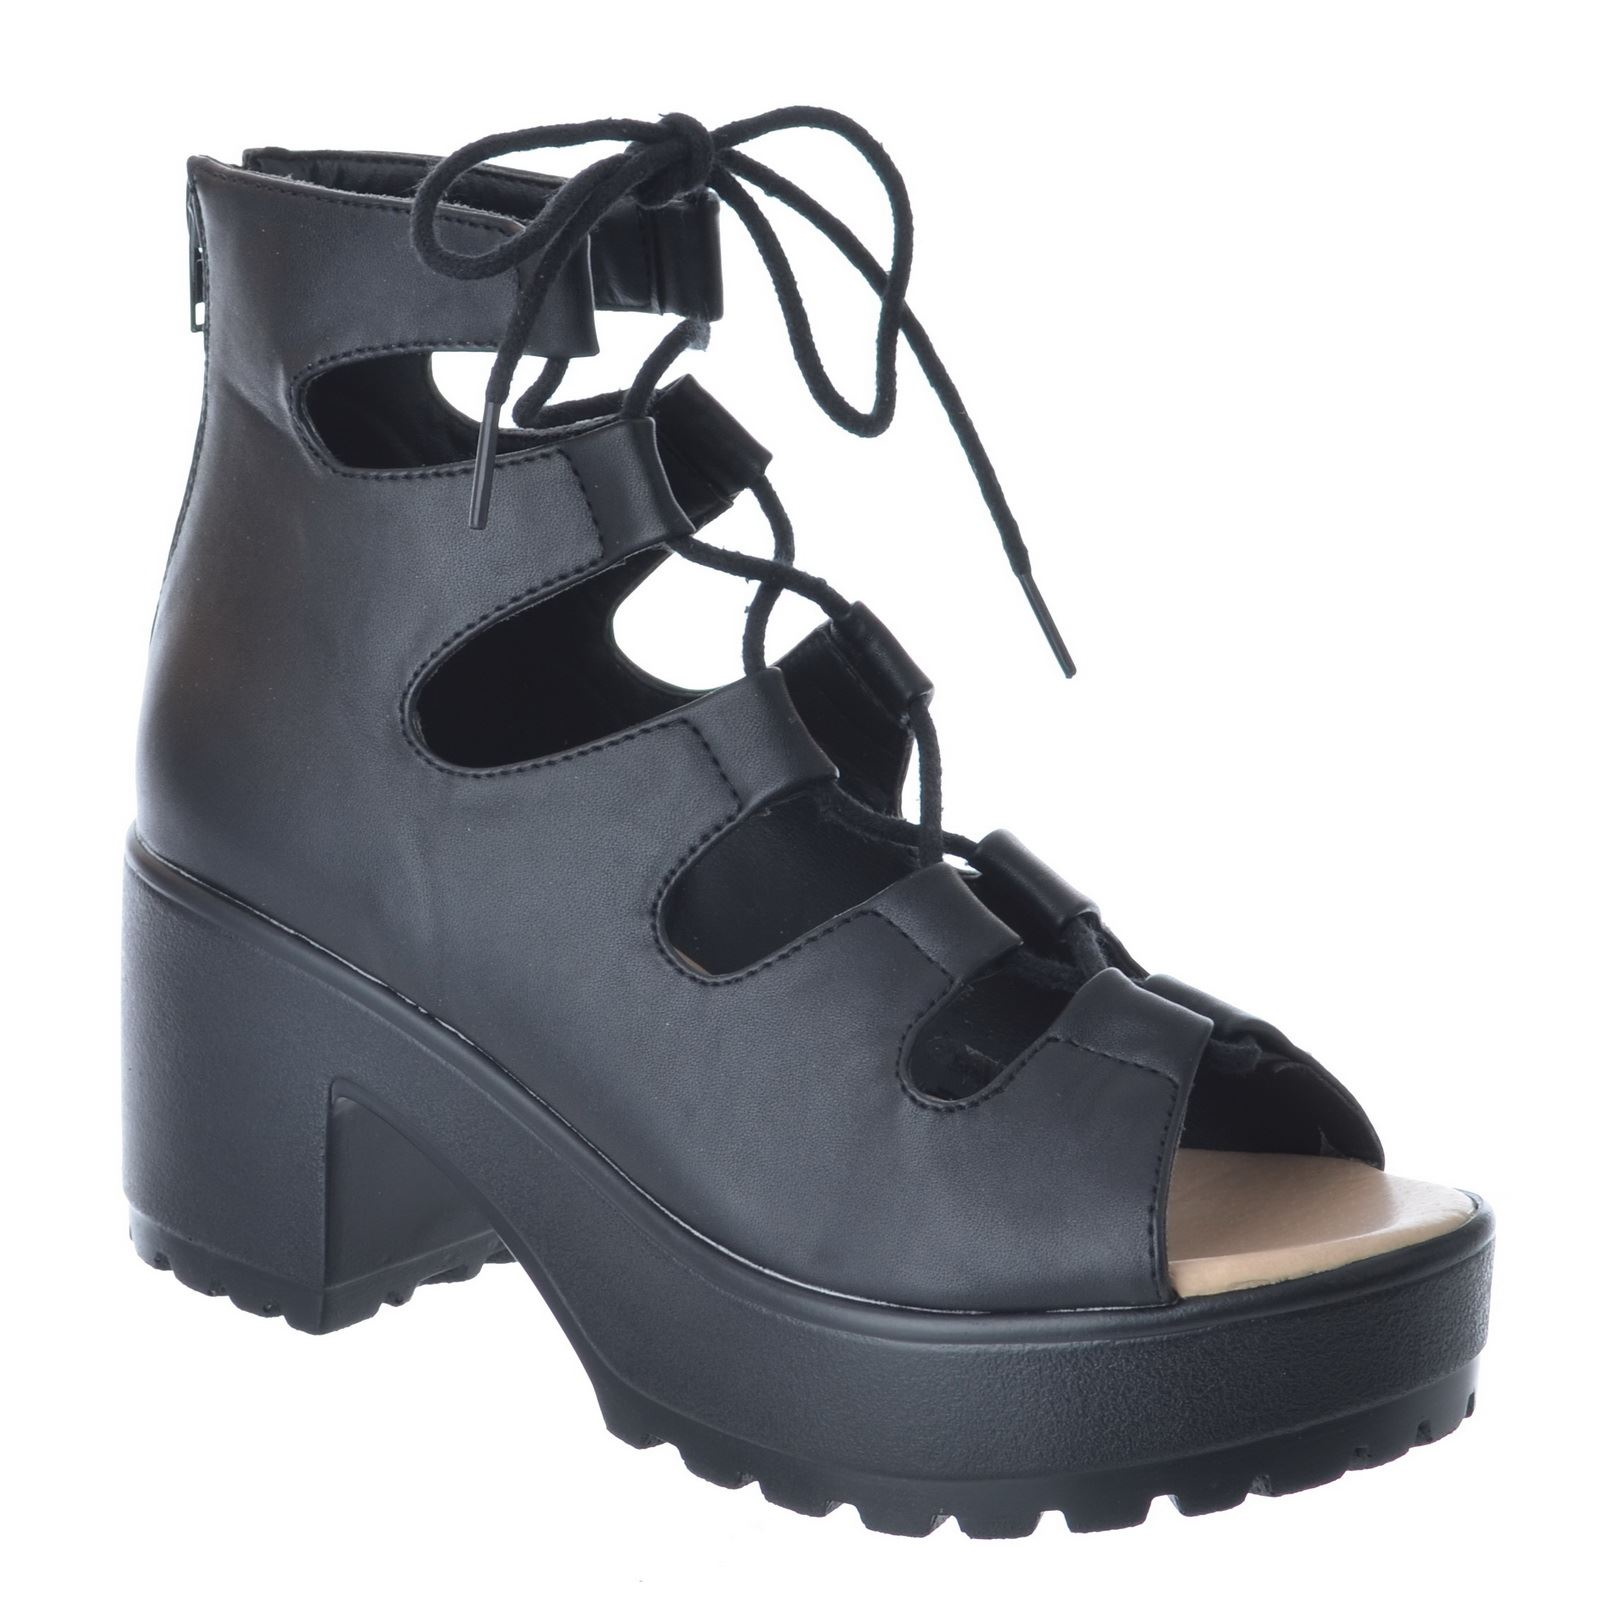 SPYLOVEBUY RAVE Womens Lace Up Cleated Sole Block Heel